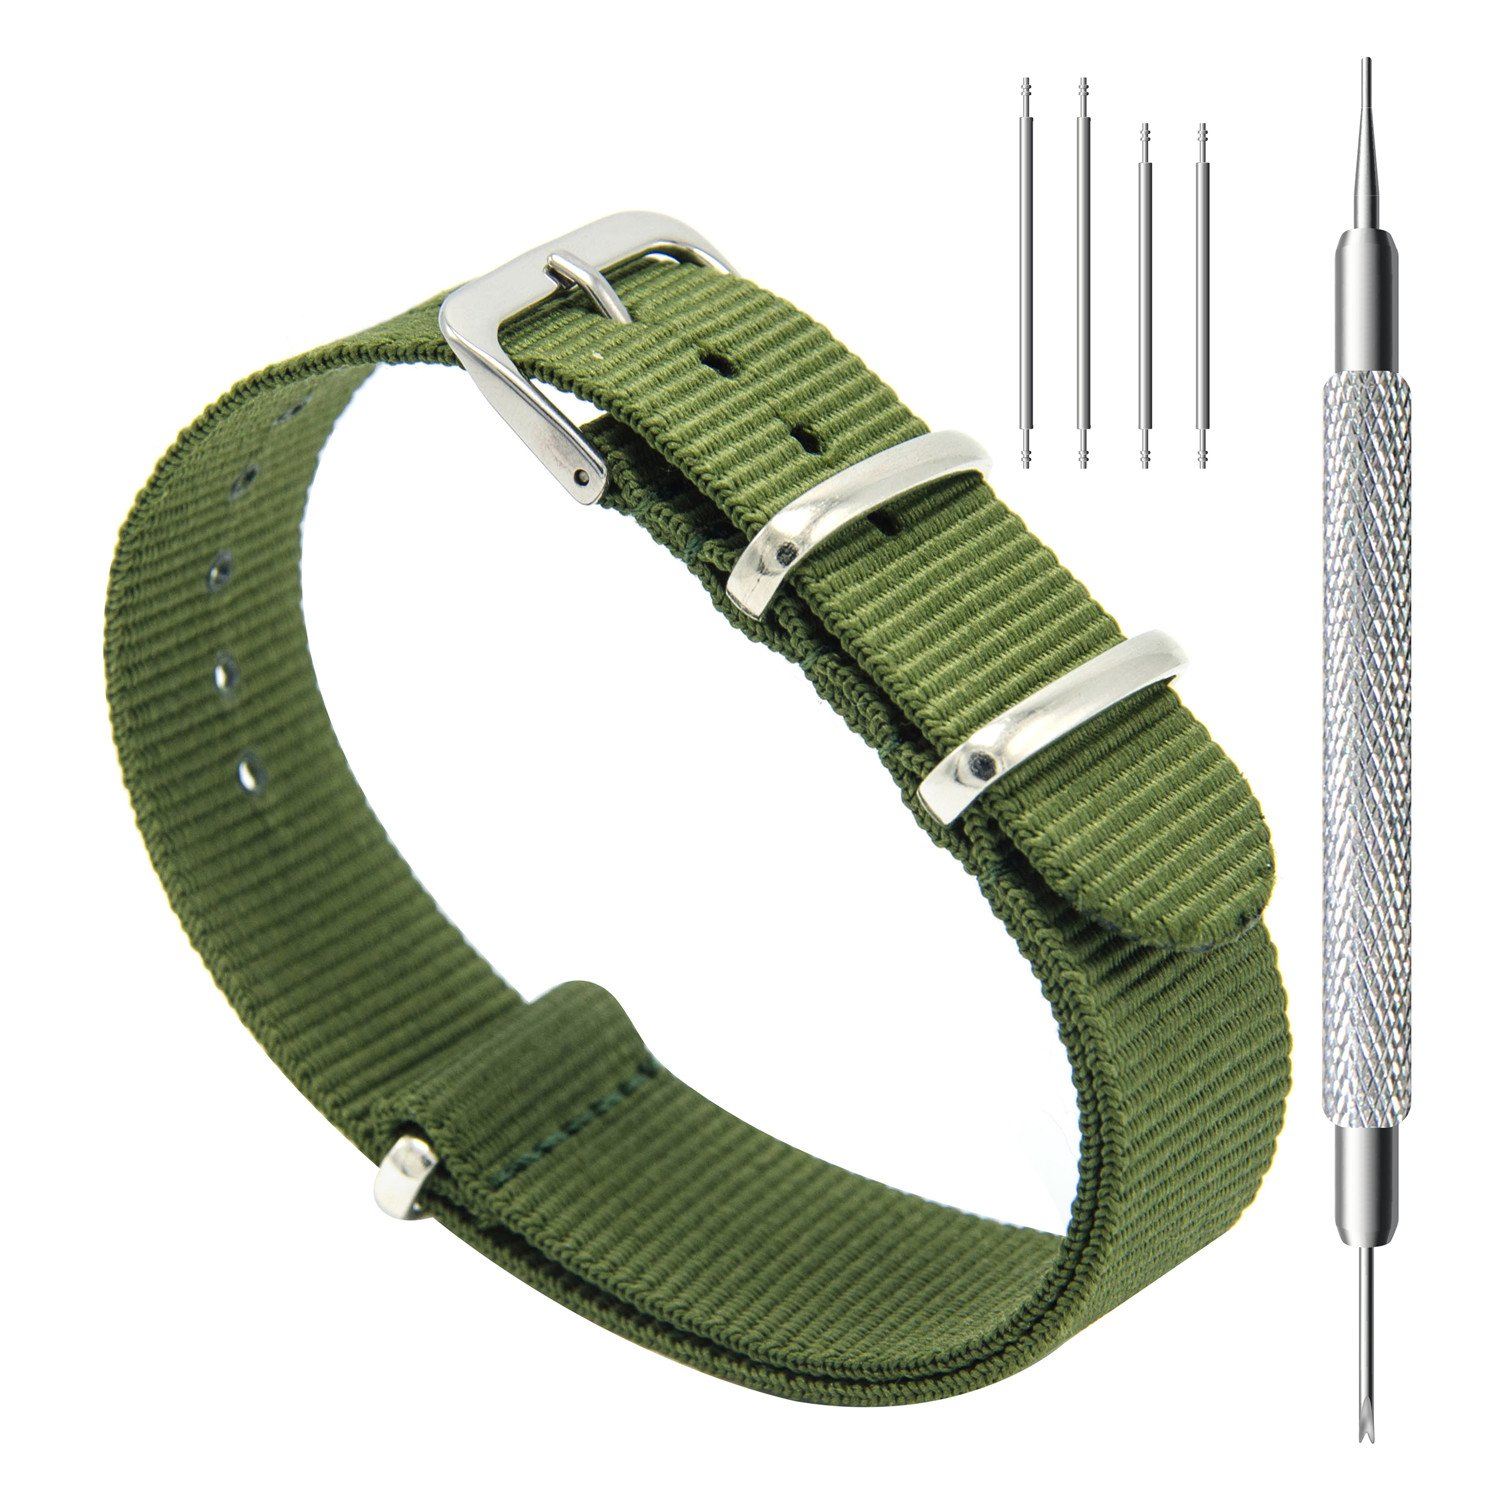 71b1322af84 CIVO Watch Bands NATO Premium Ballistic Nylon Watch Strap Stainless Steel  Buckle 18mm 20mm 22mm with Top Spring Bar Tool and 4 Spring Bars Bonus  ...